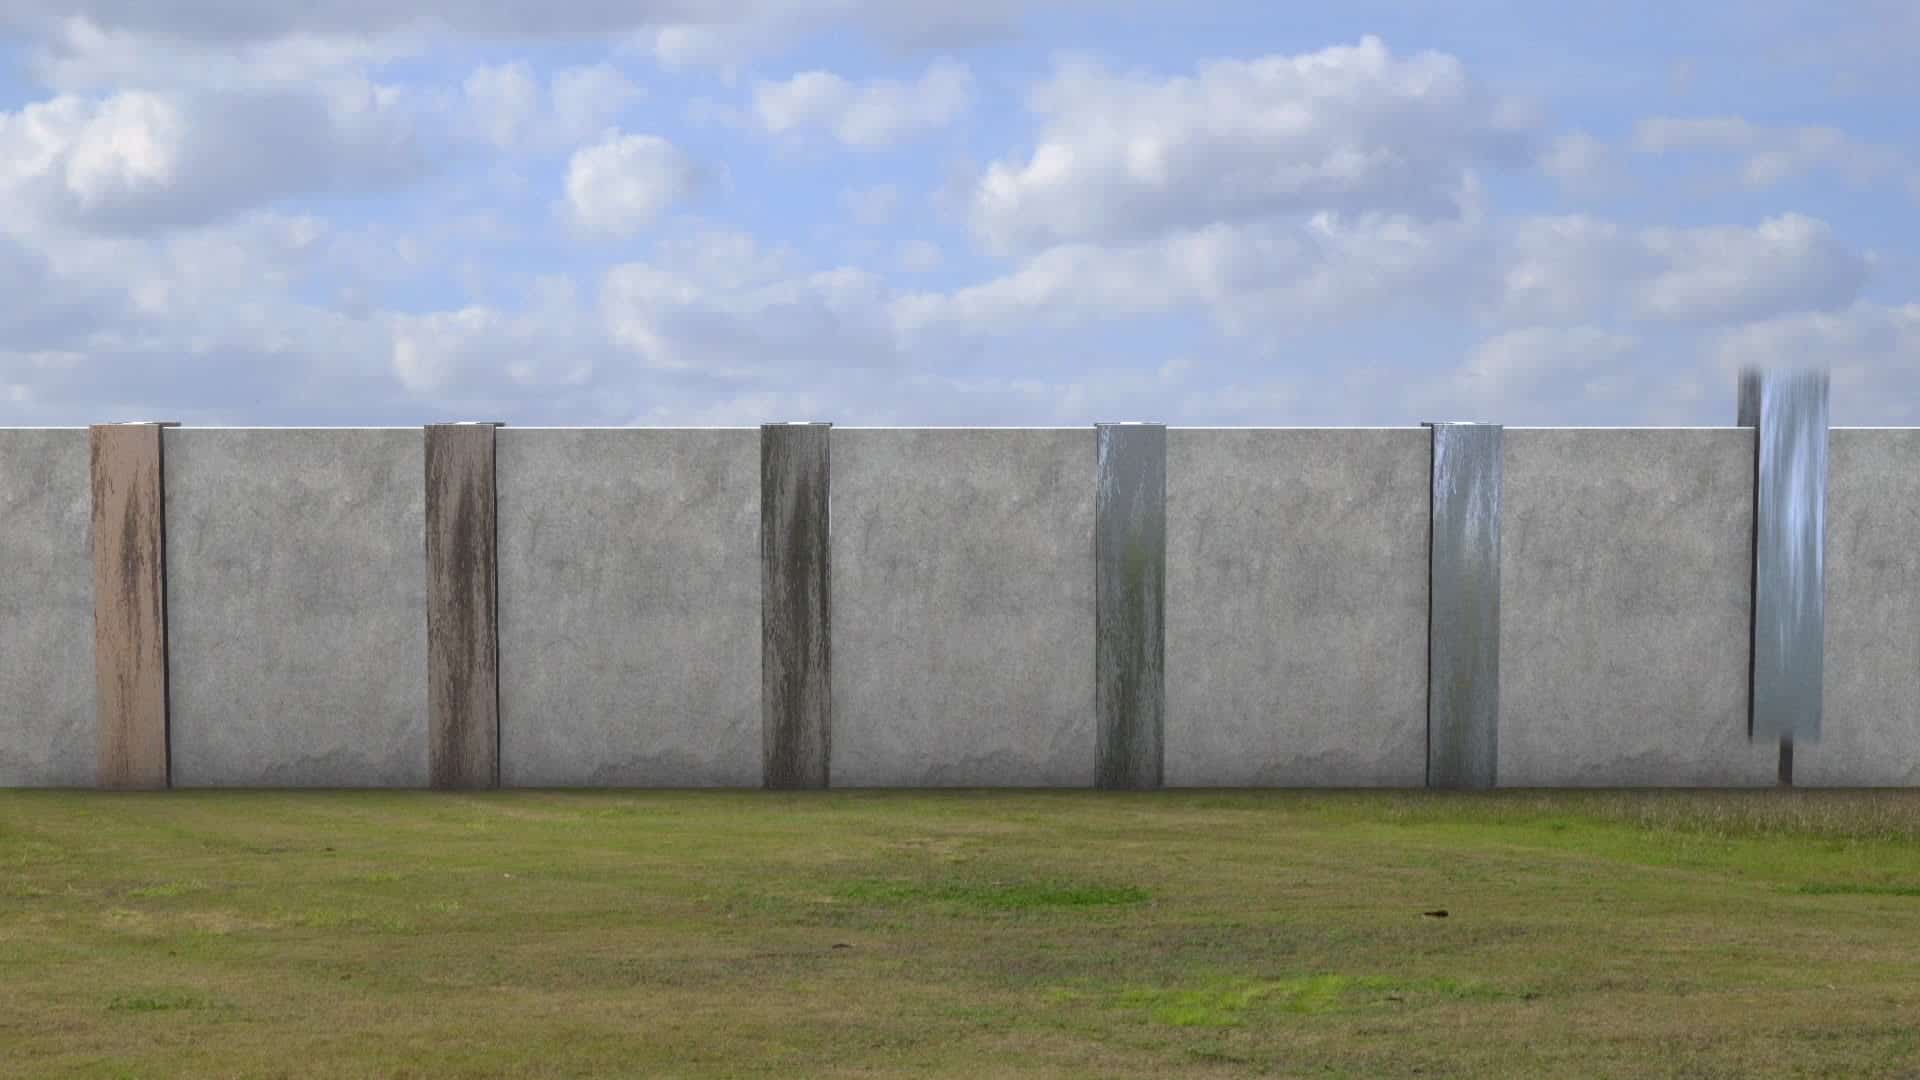 Pot Luck Friday: Texas Needs To Build A Wall To Keep Out California Insaniacs - The Mike Church Show